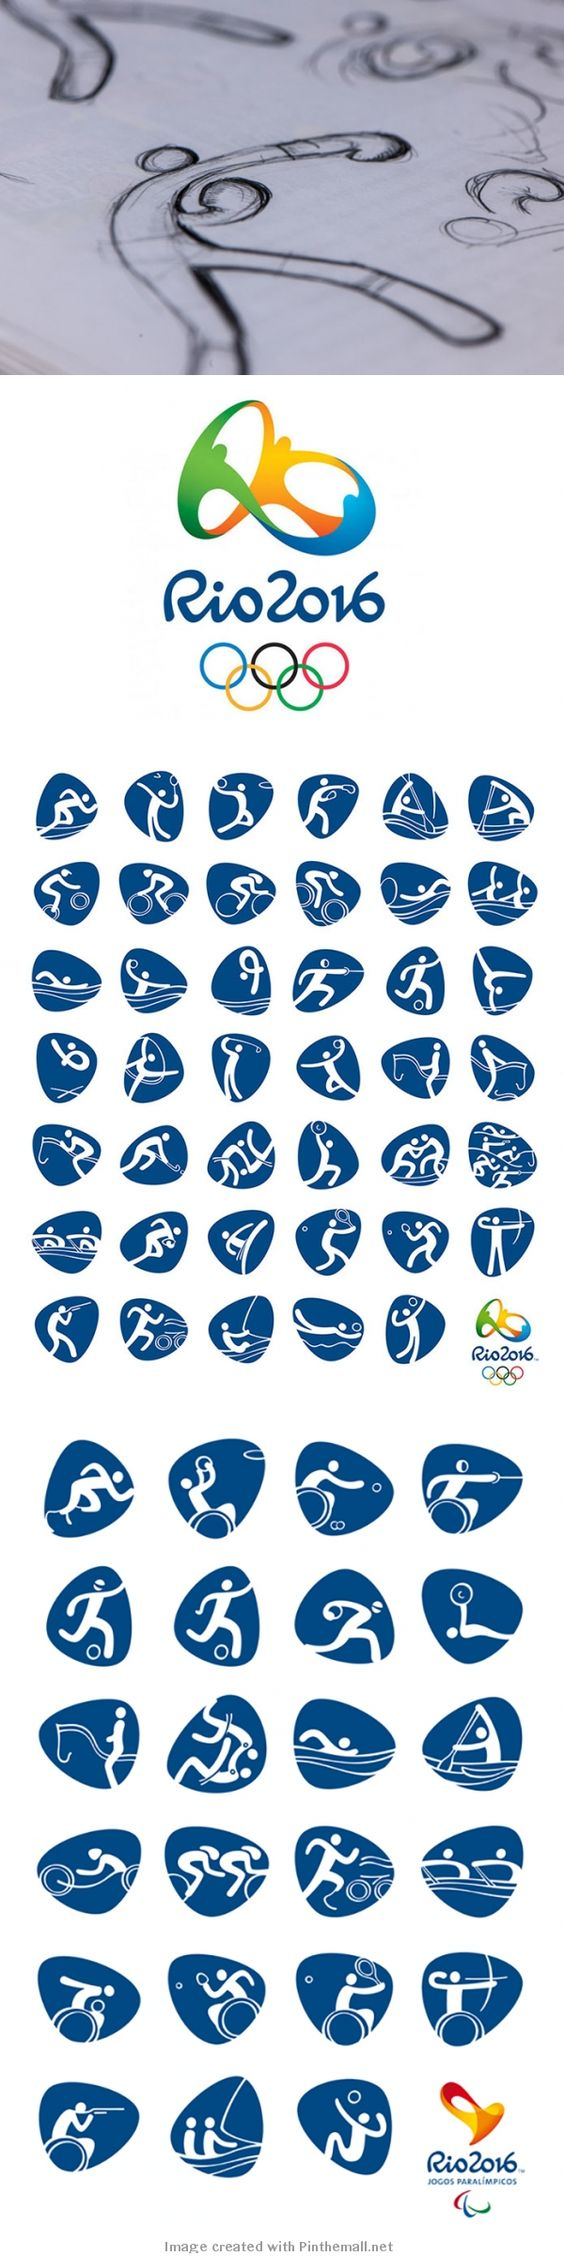 Olympic rings logo rio 2016 olympics logo designed by fred gelli - Creative Review Rio 2016 Olympic Pictograms Unveiled Creative Review Pinterest Creative Review And Logos